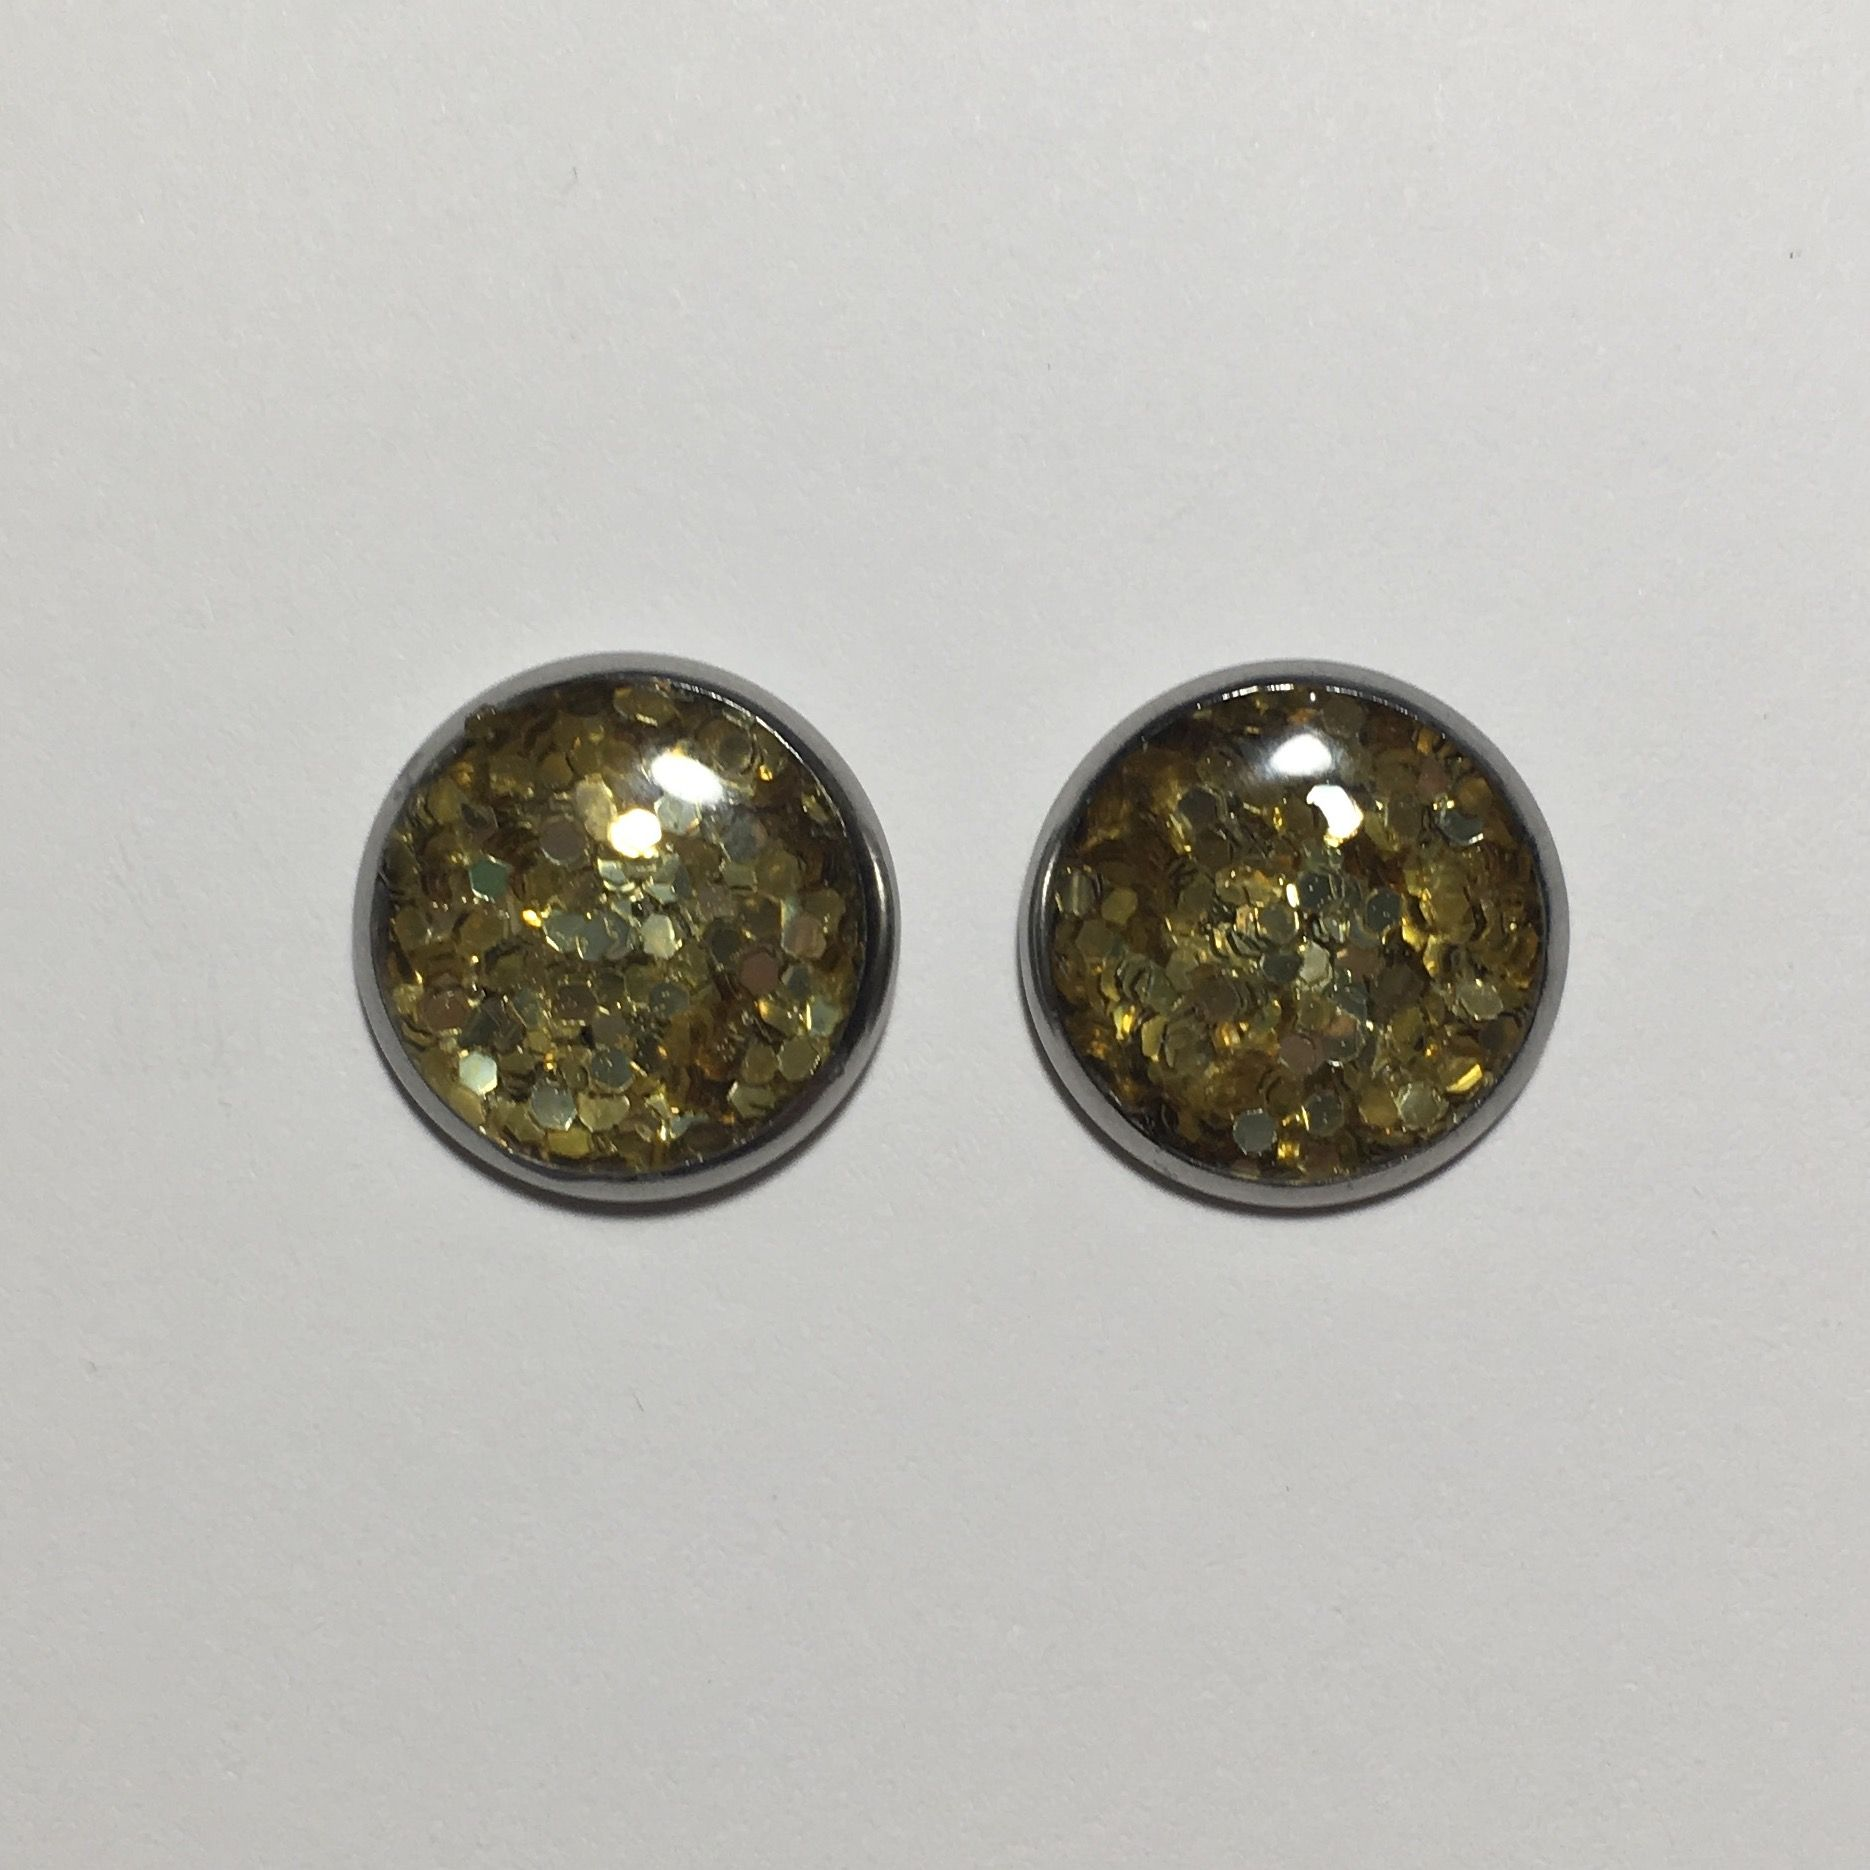 earrings druzy gray earring making cabochons il listing fullxfull set jewelry kit stud sparkle